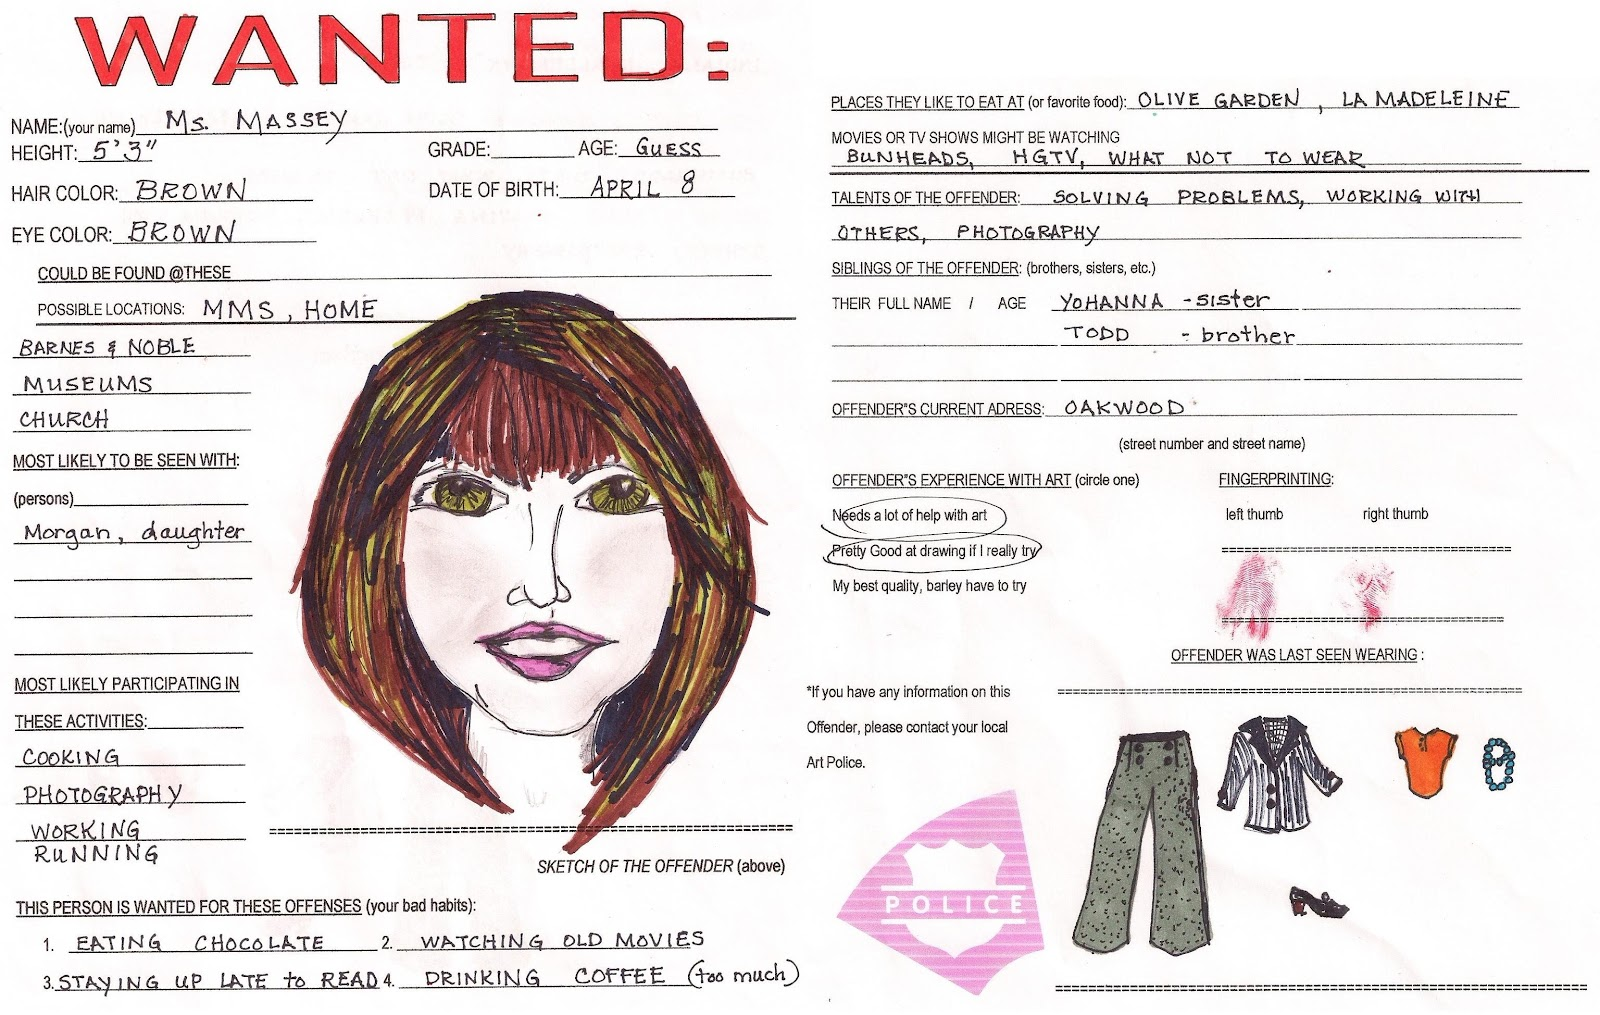 example of wanted poster